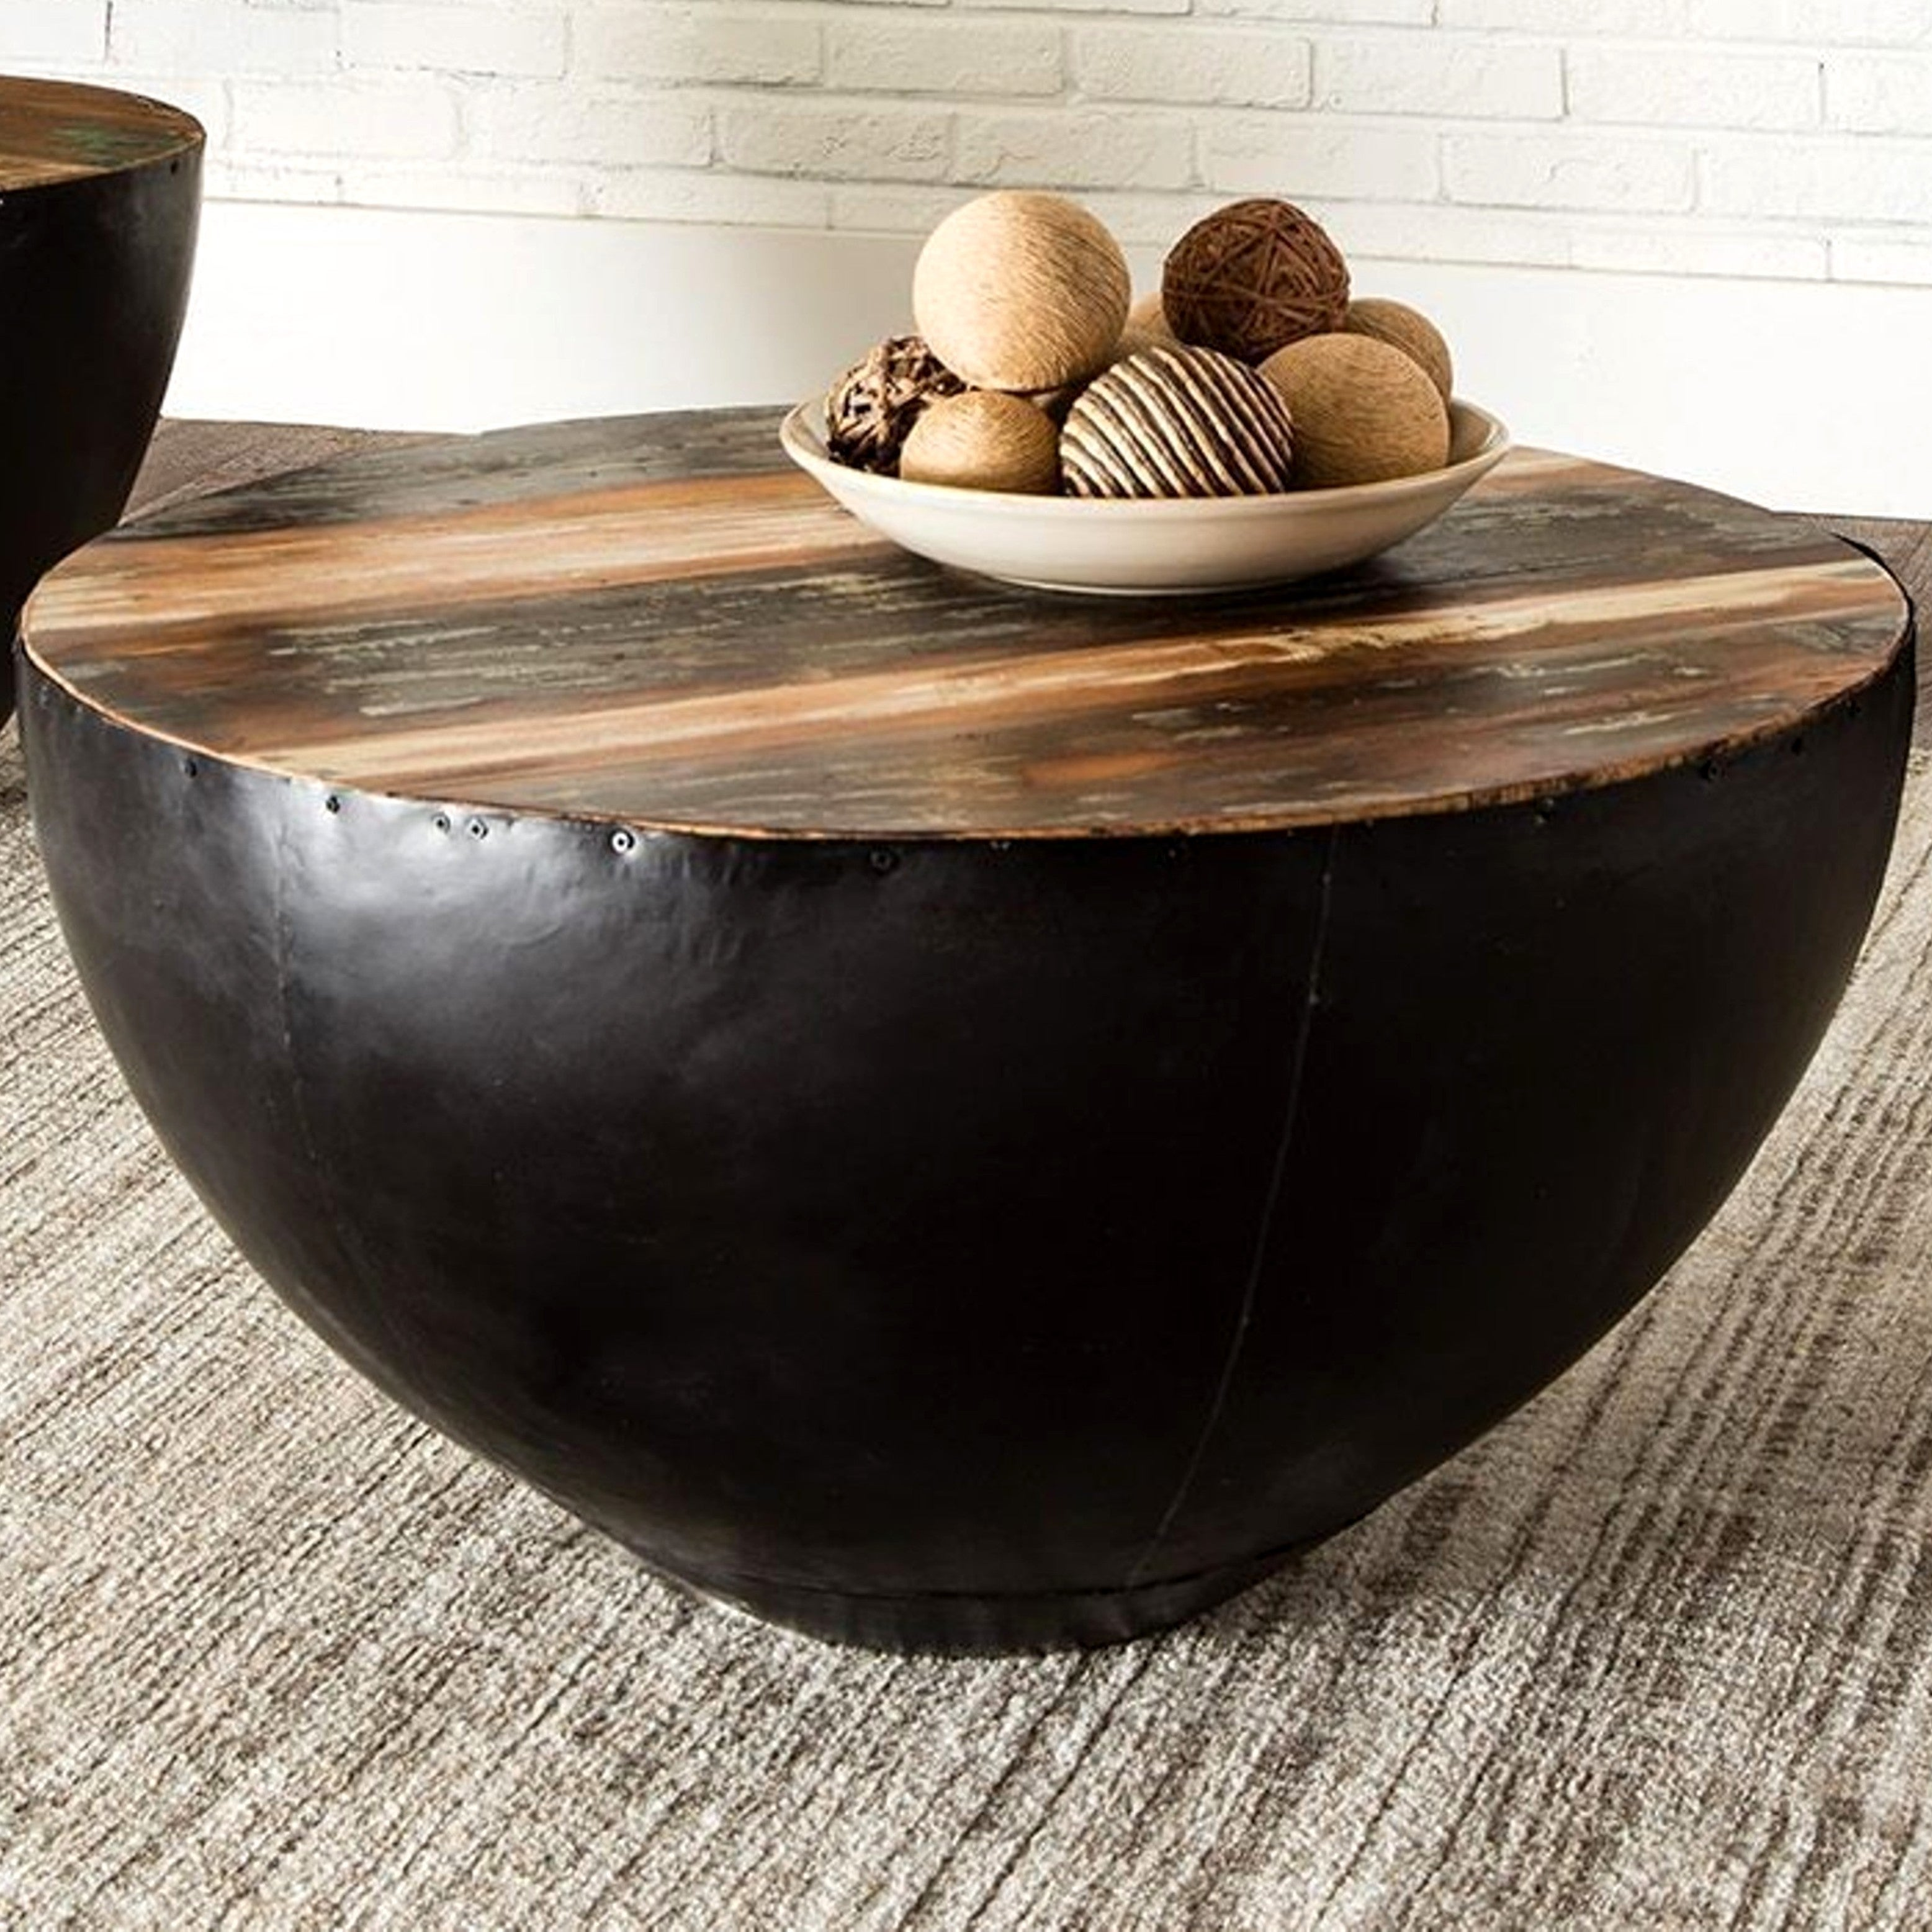 Drum Shaped Coffee Table.Black Iron Drum Shaped Accent Coffee Table With Natural Reclaimed Wood Top